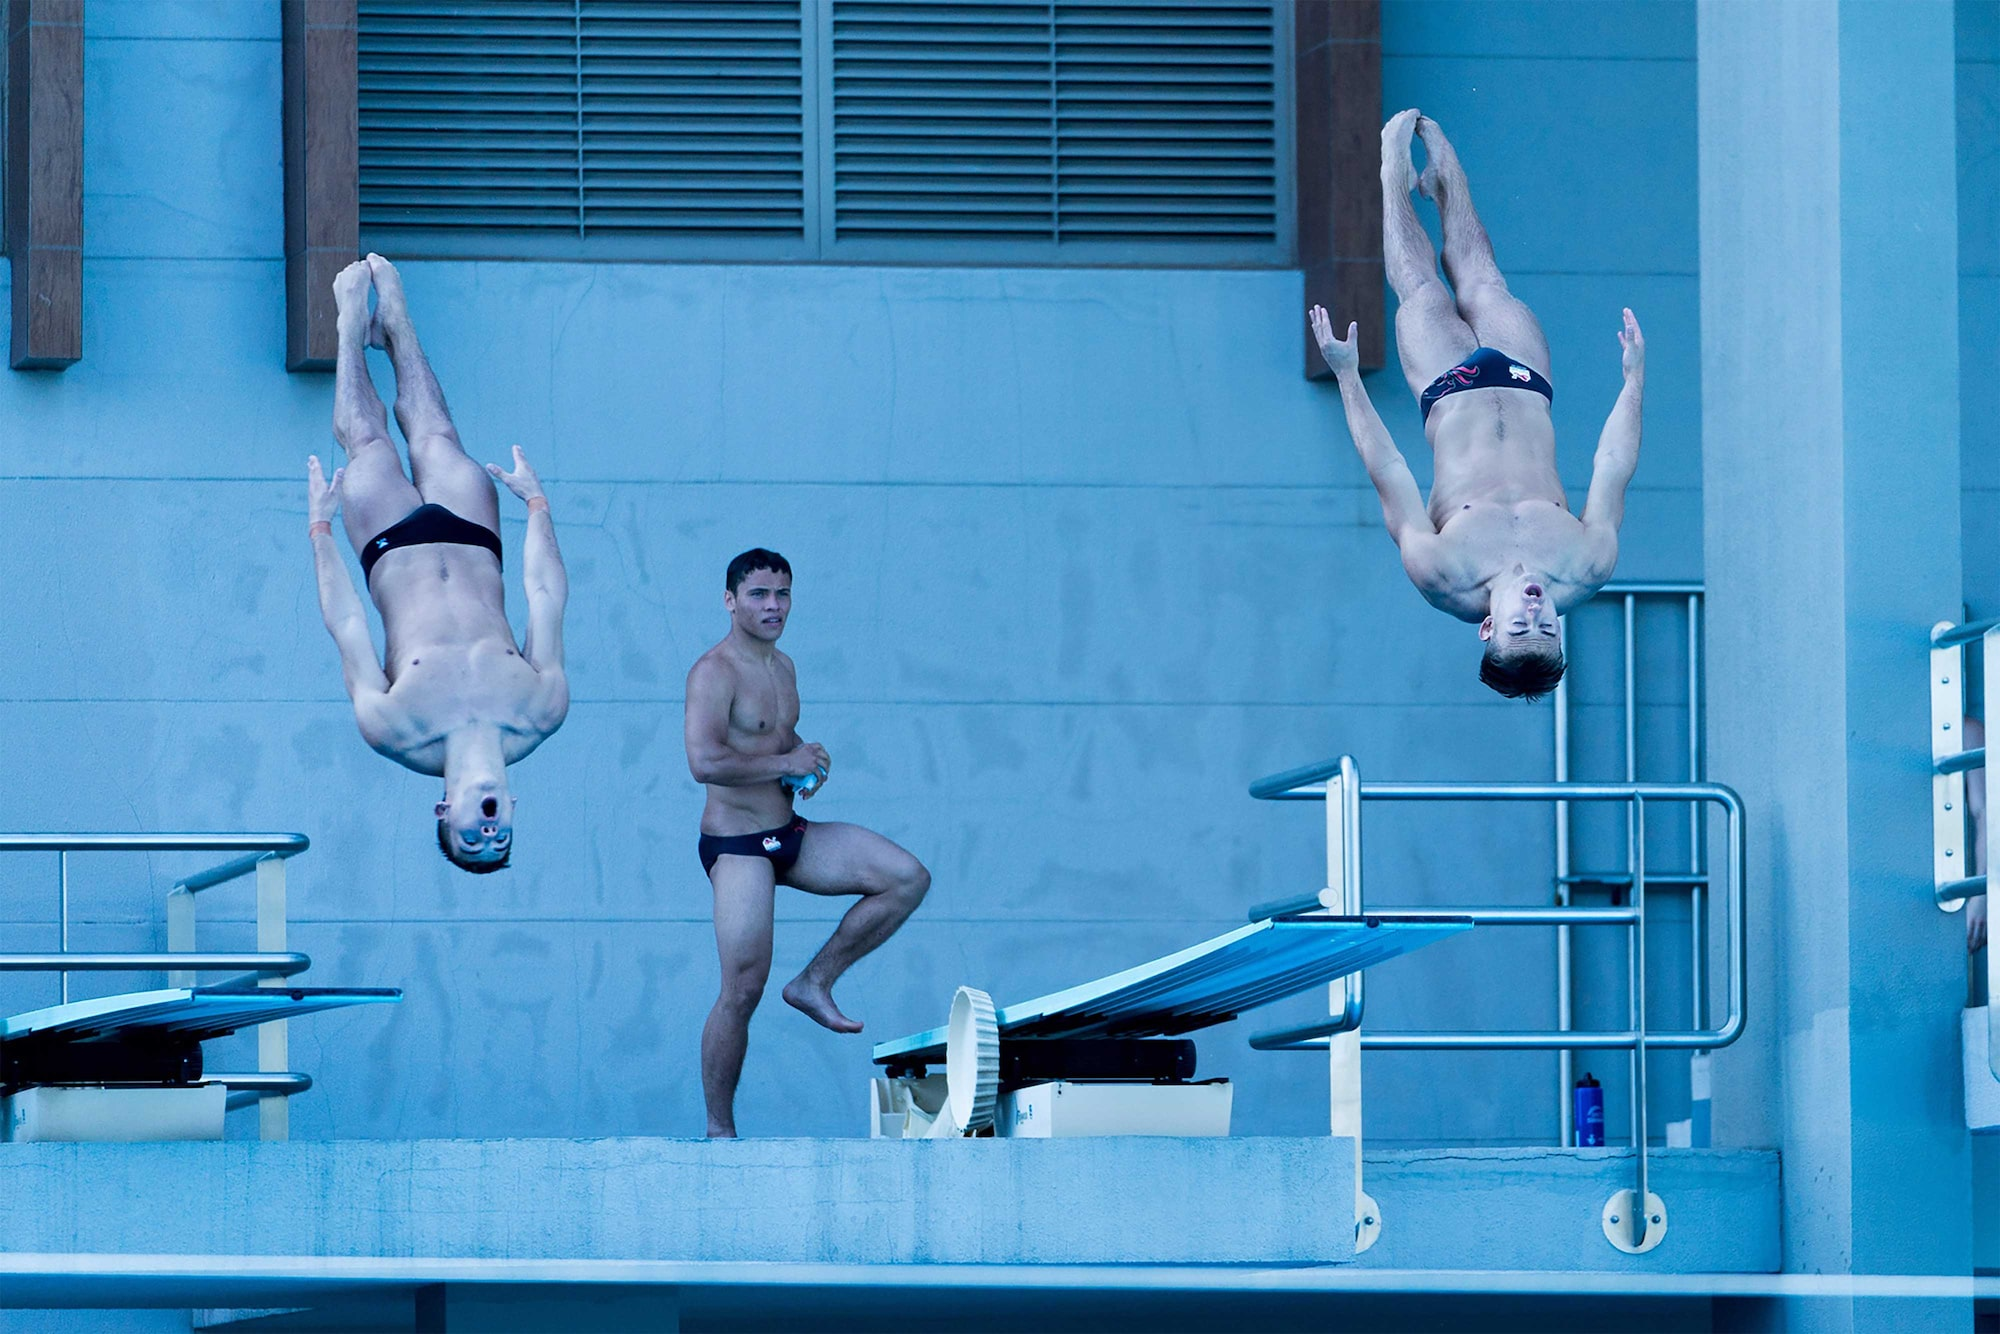 Mine-Kasapoglu-sony-alpha-9-2-swimmers-in-mid-air-as-a-third-looks-ond